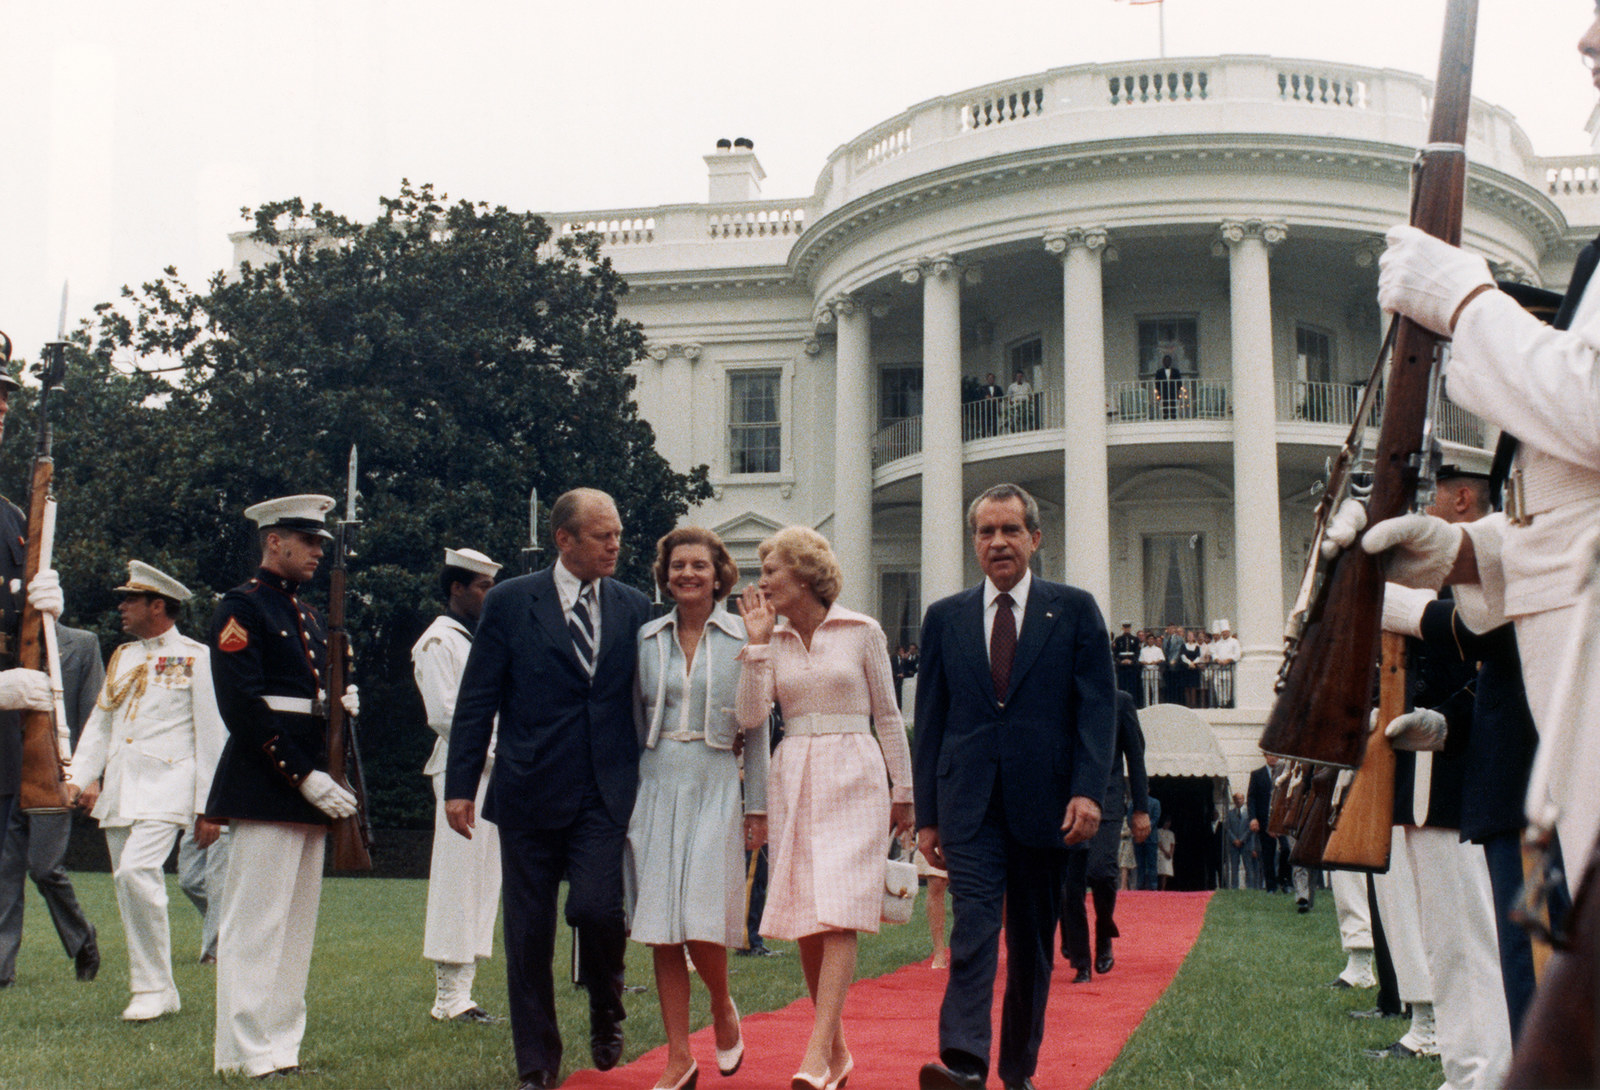 After resigning, President Nixon leaves the White House with (from right) Vice President Gerald Ford, second lady Betty Ford, and first lady Pat Nixon.